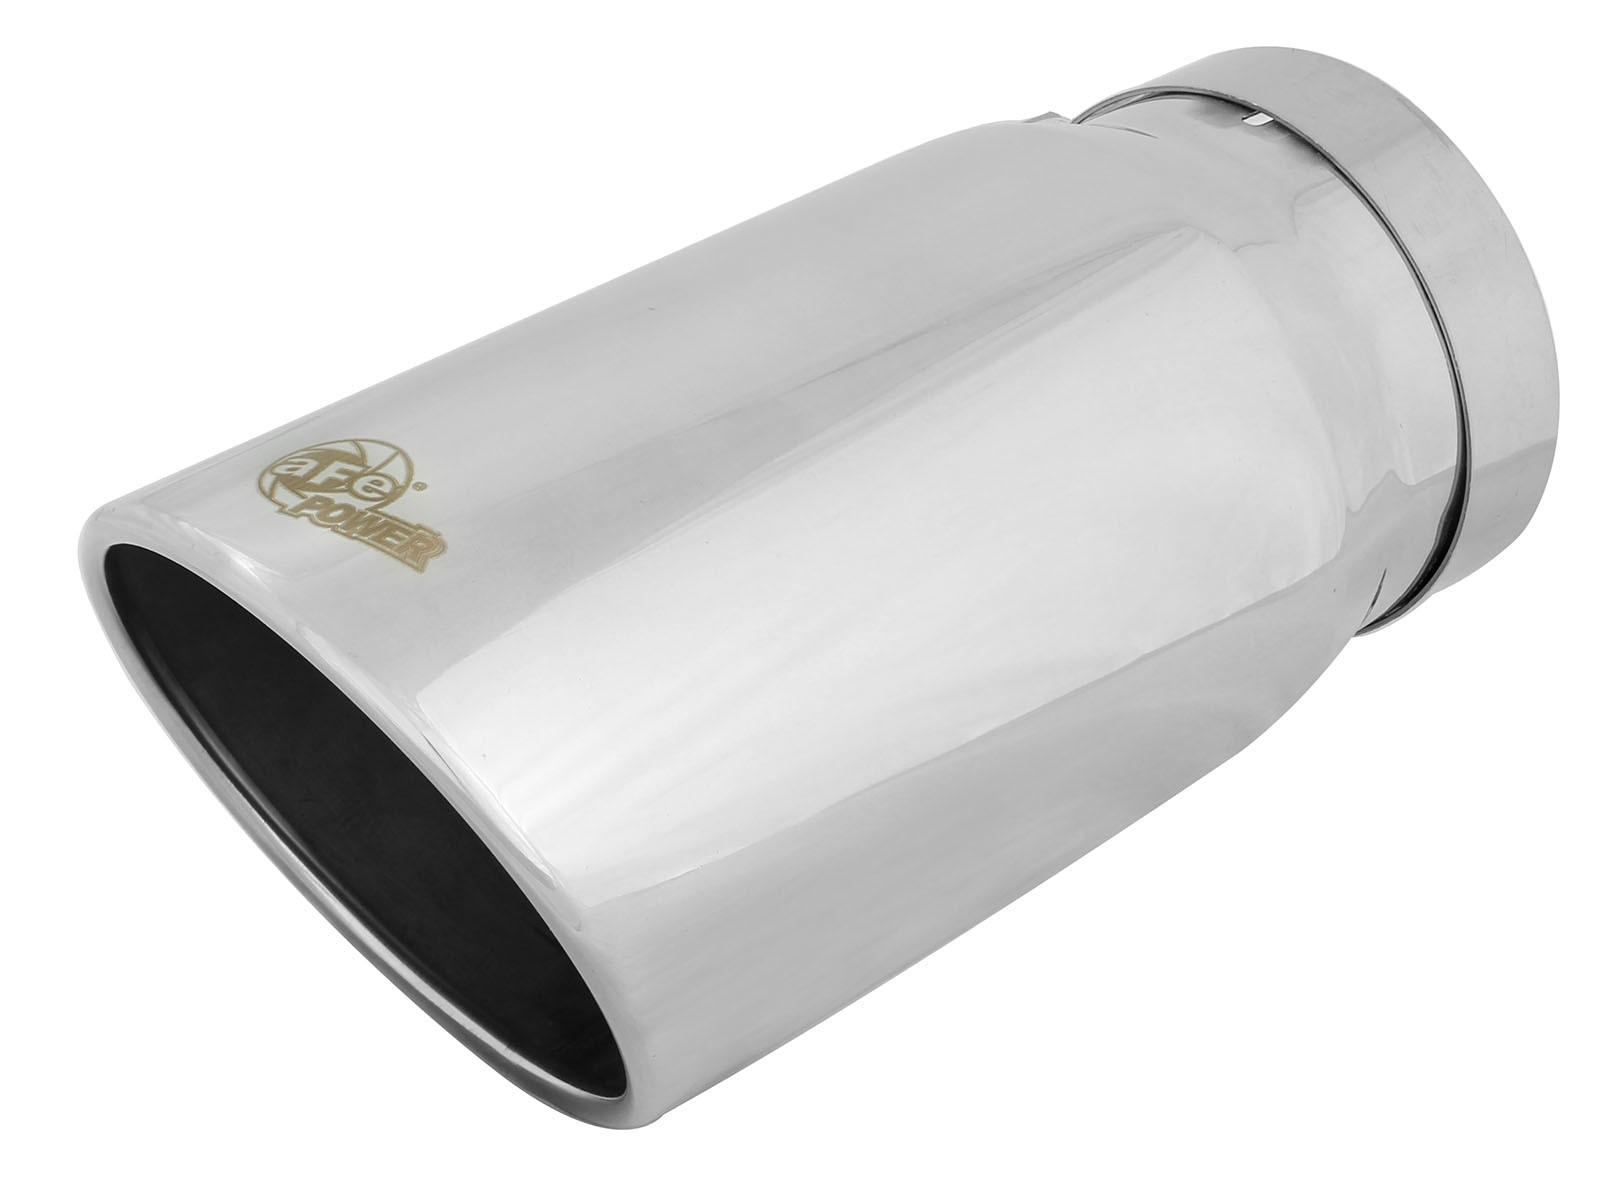 "aFe POWER 49T50604-P12 MACH Force-Xp 5"" 304 Stainless Steel Exhaust Tip"